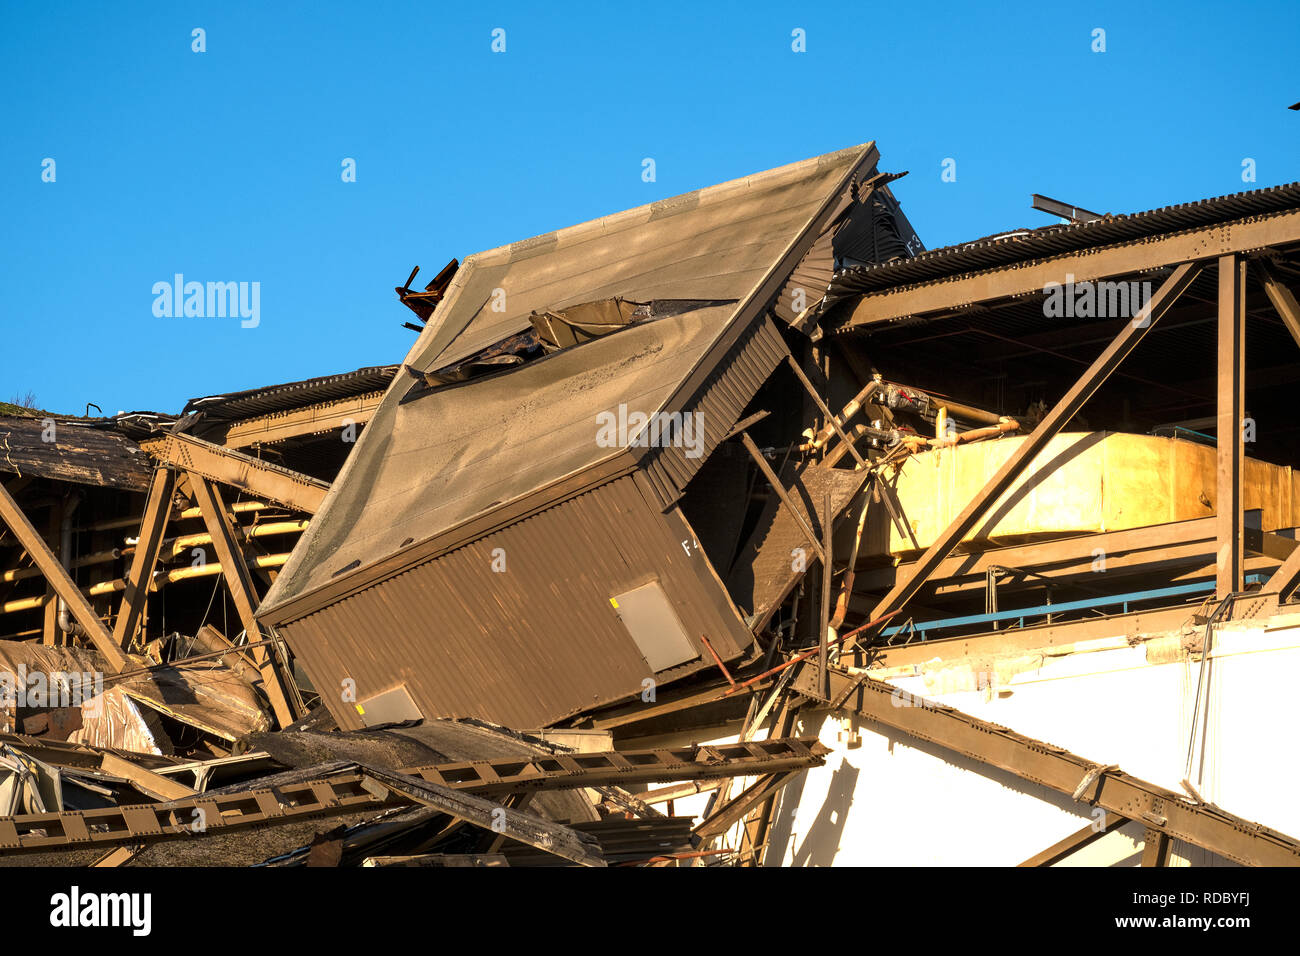 Collapsed factory roof demolition background - Stock Image